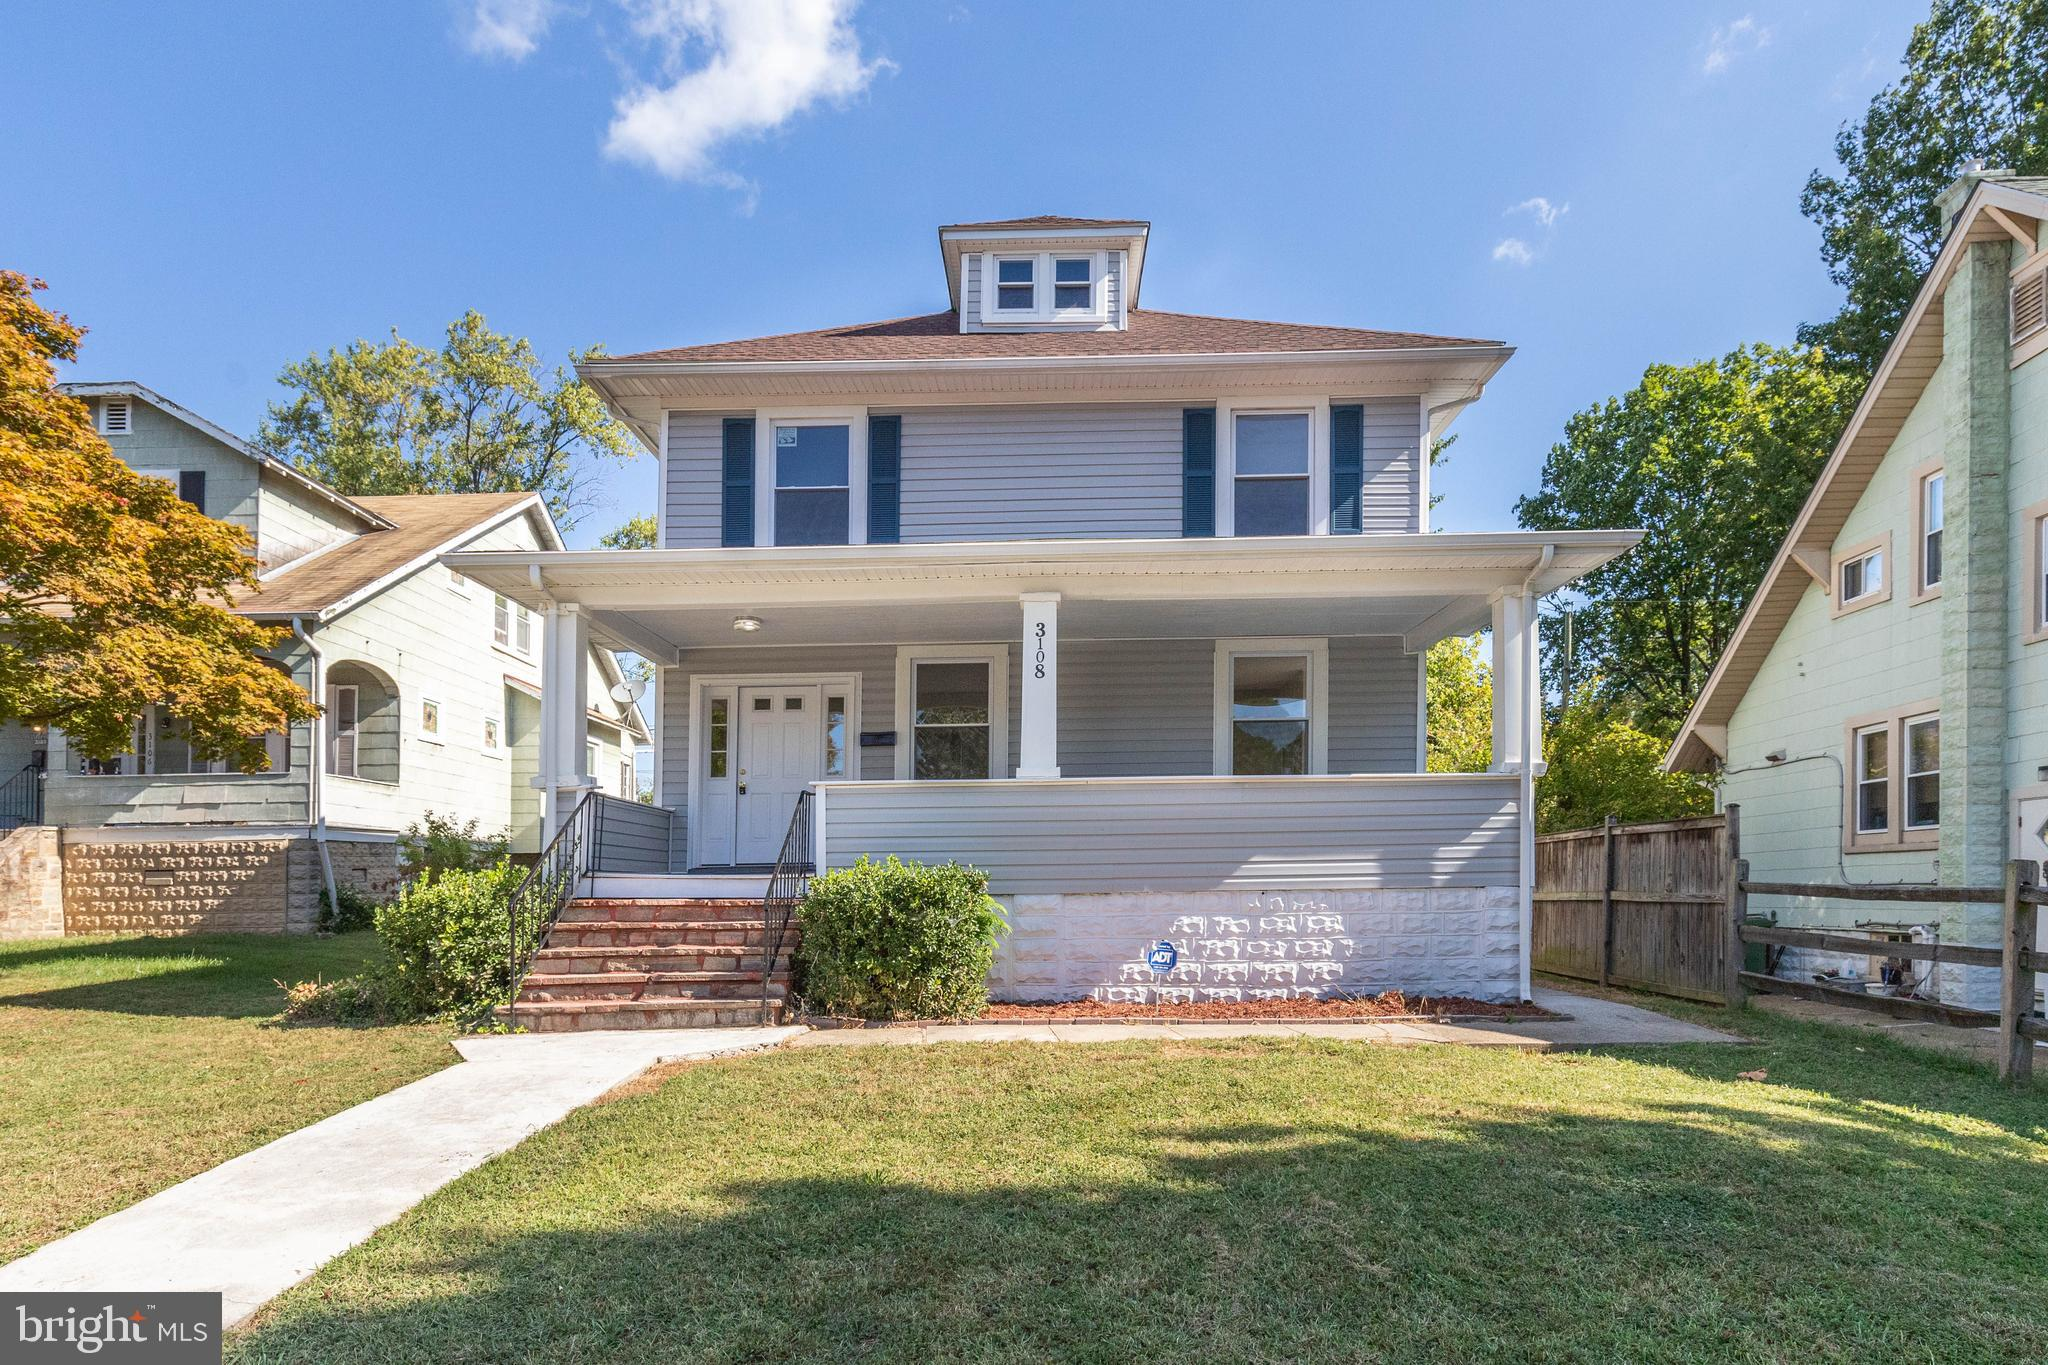 3108 GIBBONS AVENUE, BALTIMORE, MD 21214